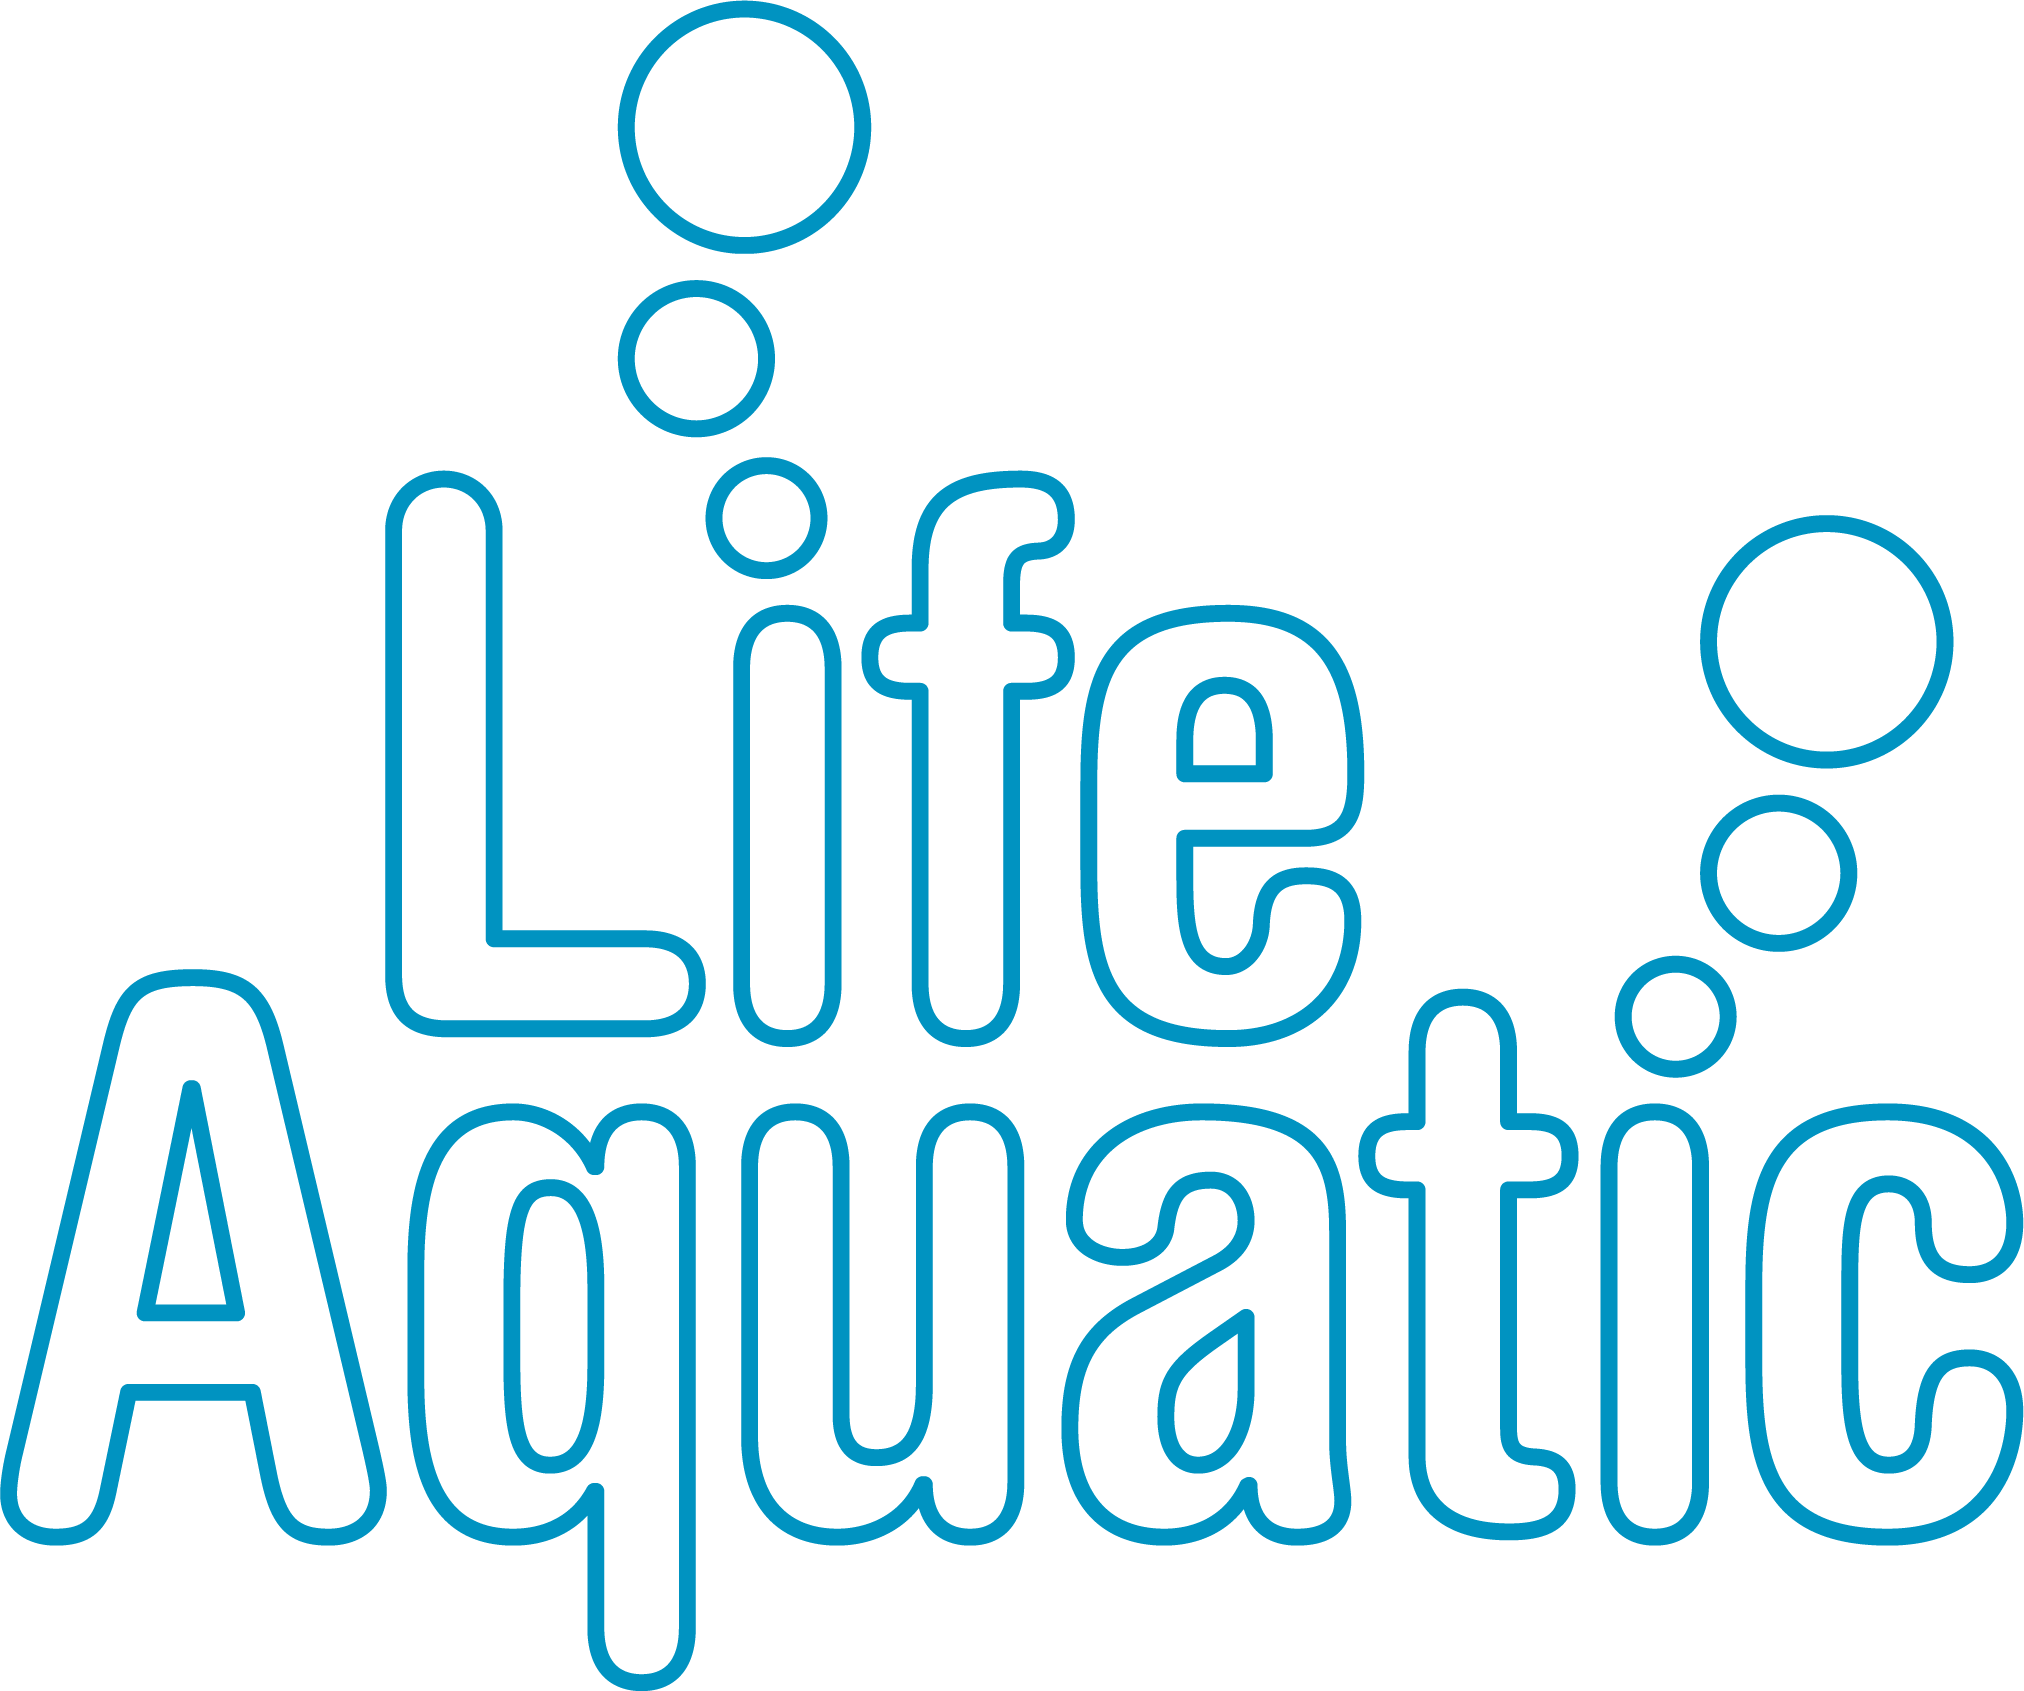 LifeAquatic_logo_100.0.10.10.png